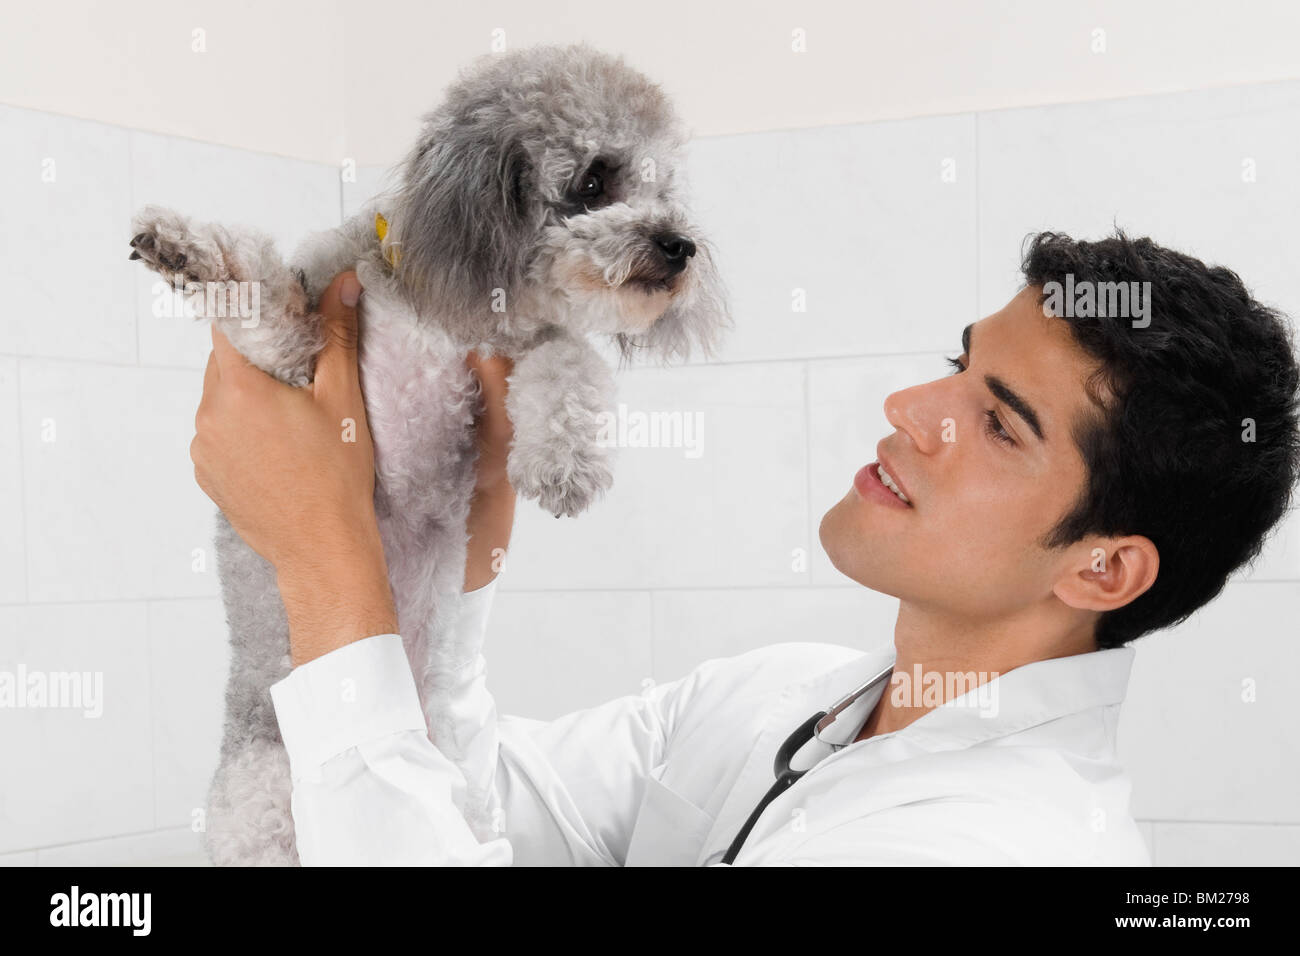 Vet carrying a dog - Stock Image